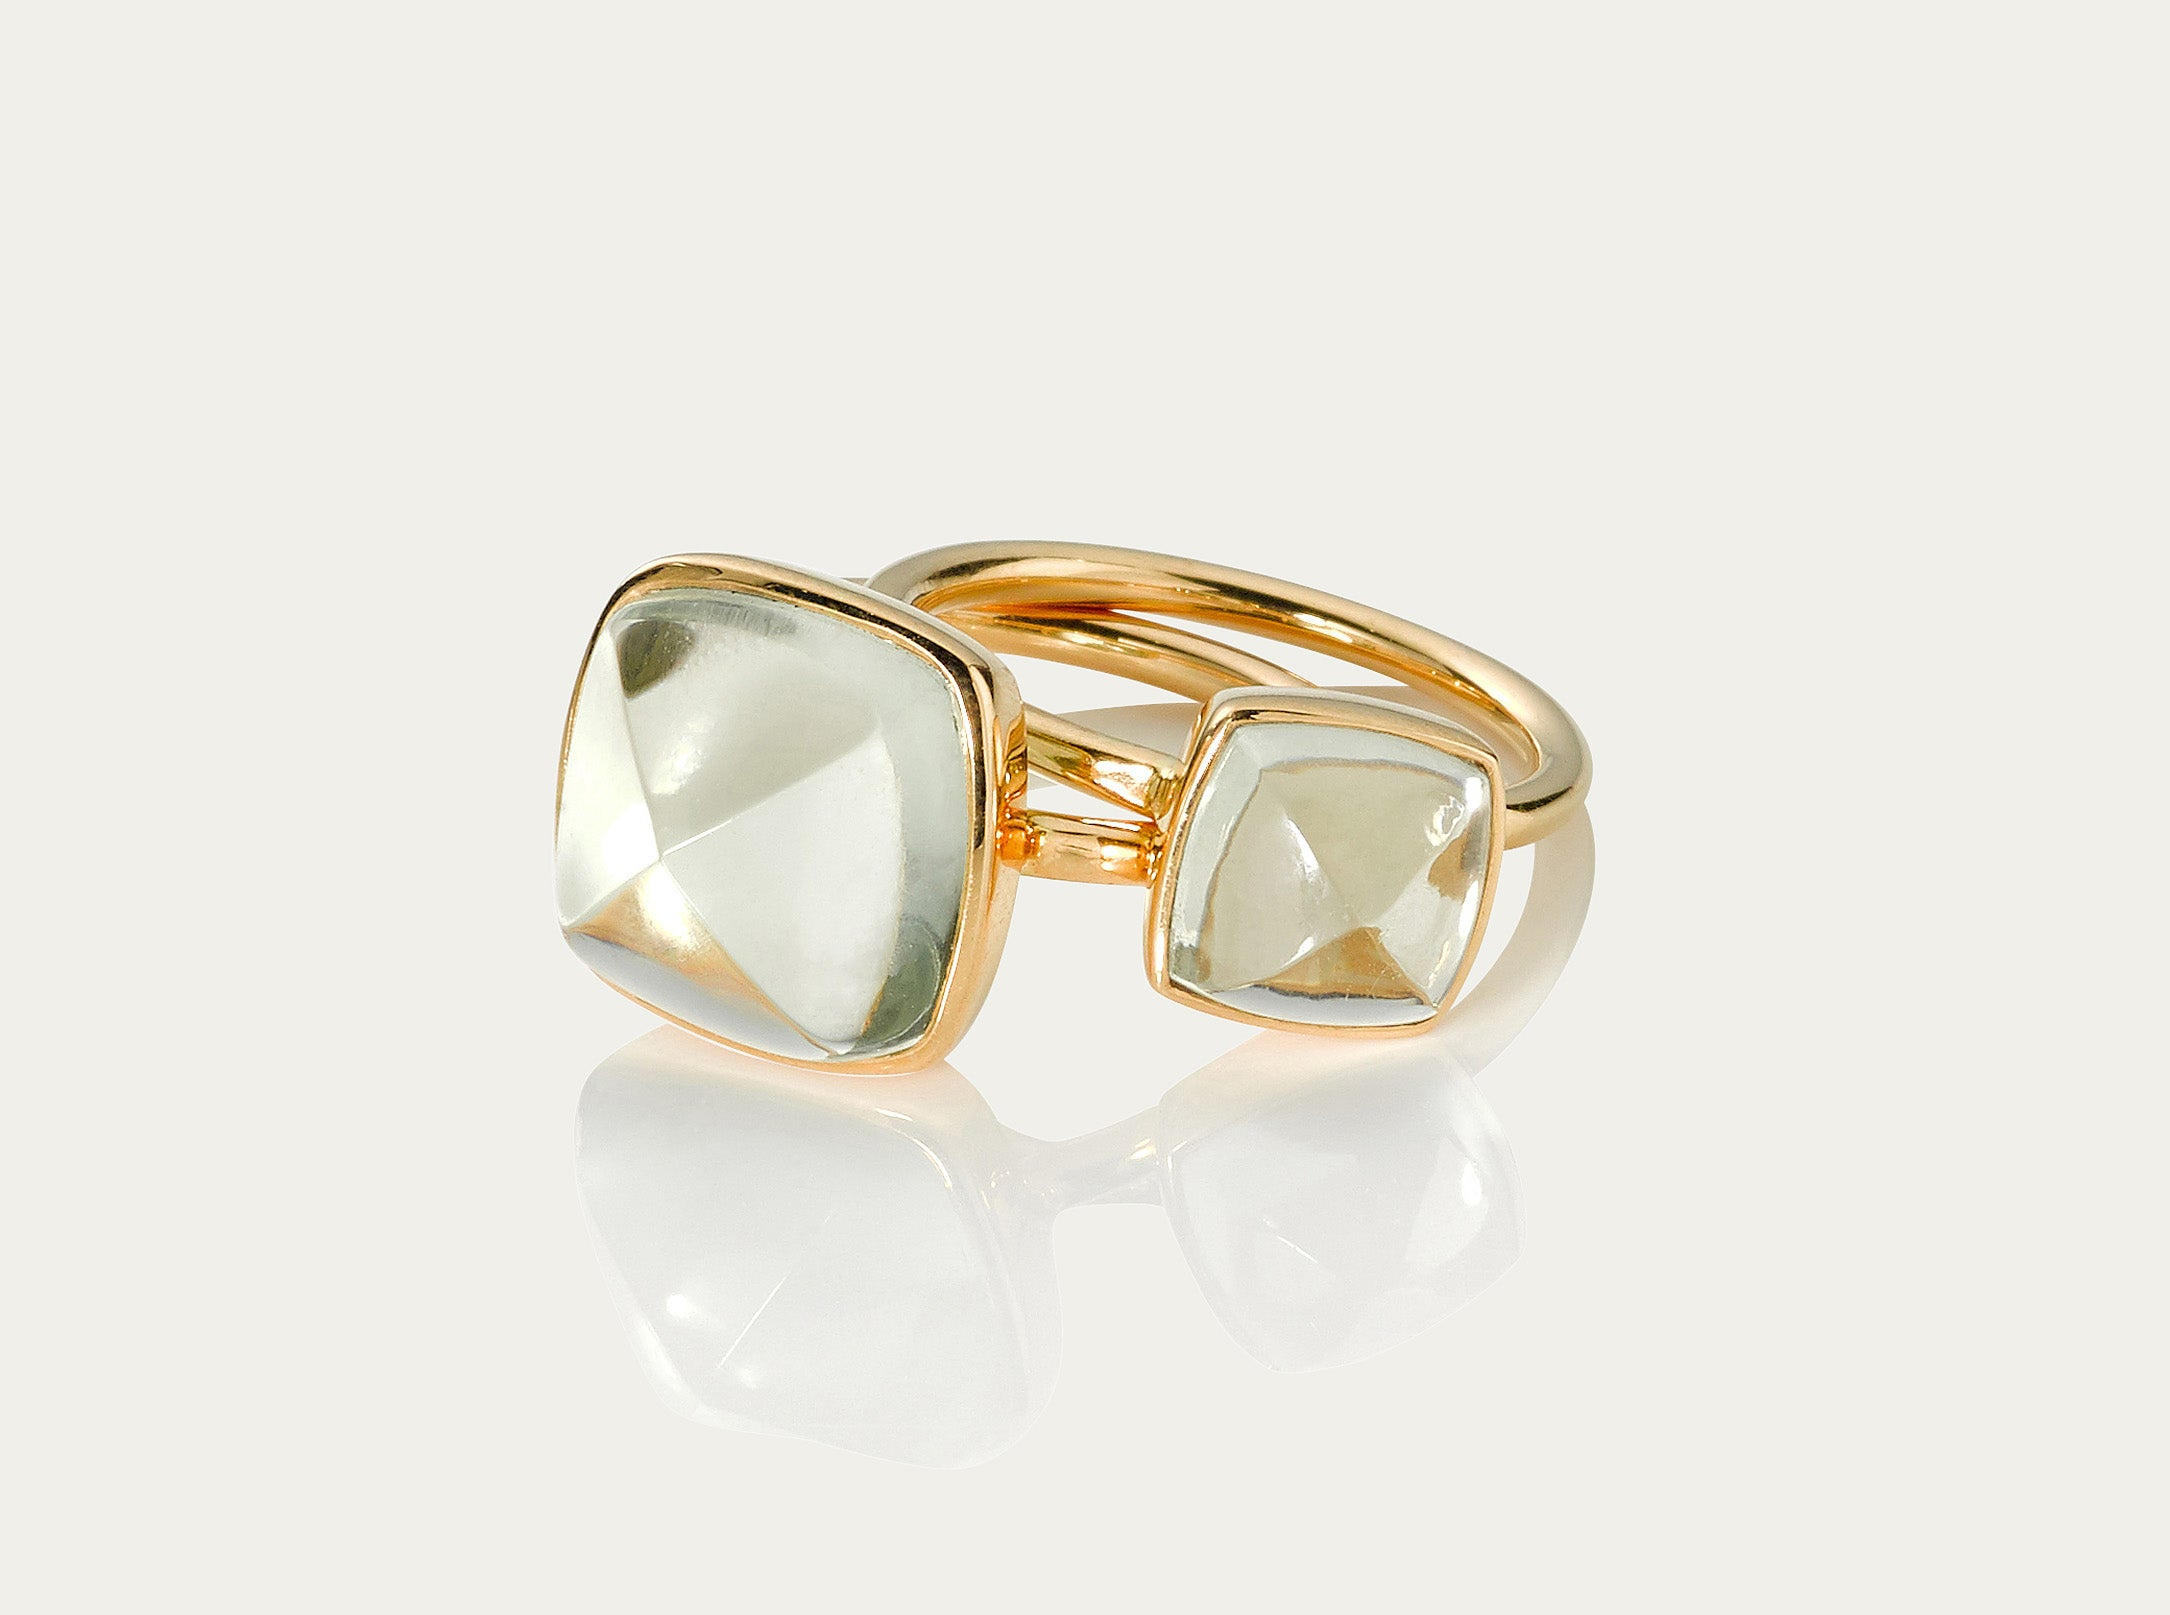 Bobo Ring Sugarloaf - Green Amethyst